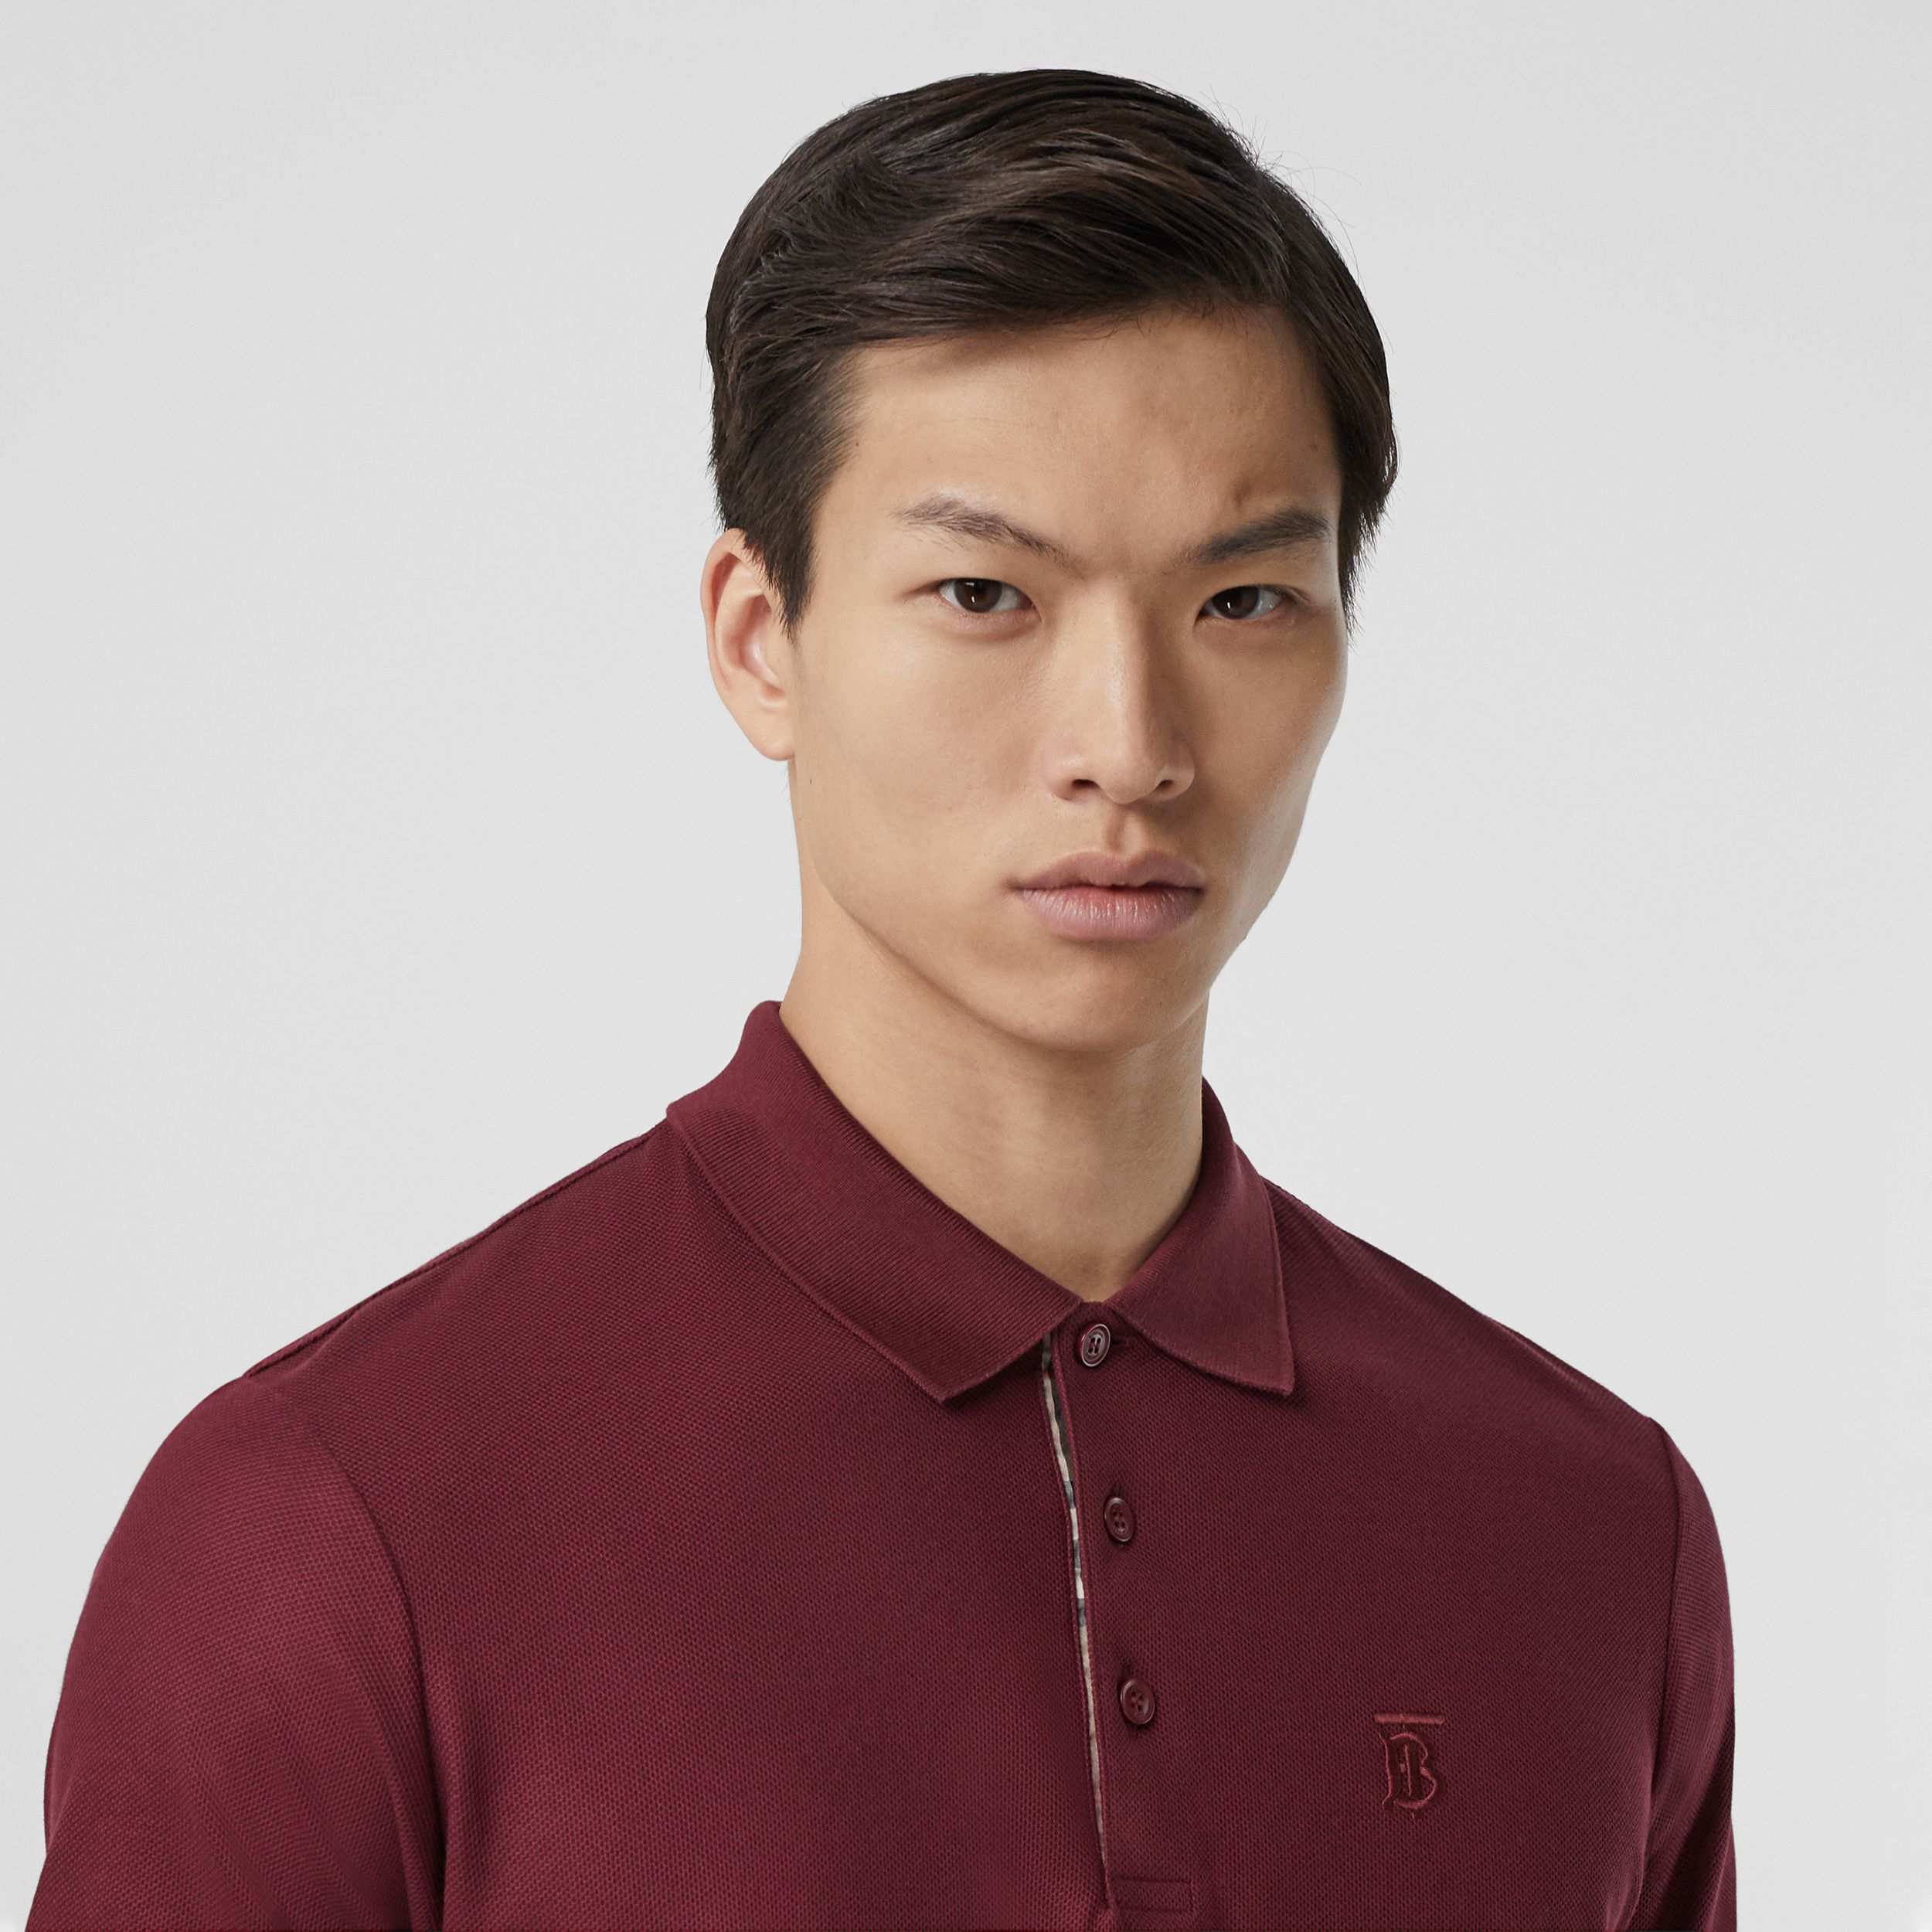 Monogram Motif Cotton Piqué Polo Shirt in Garnet - Men | Burberry - 2